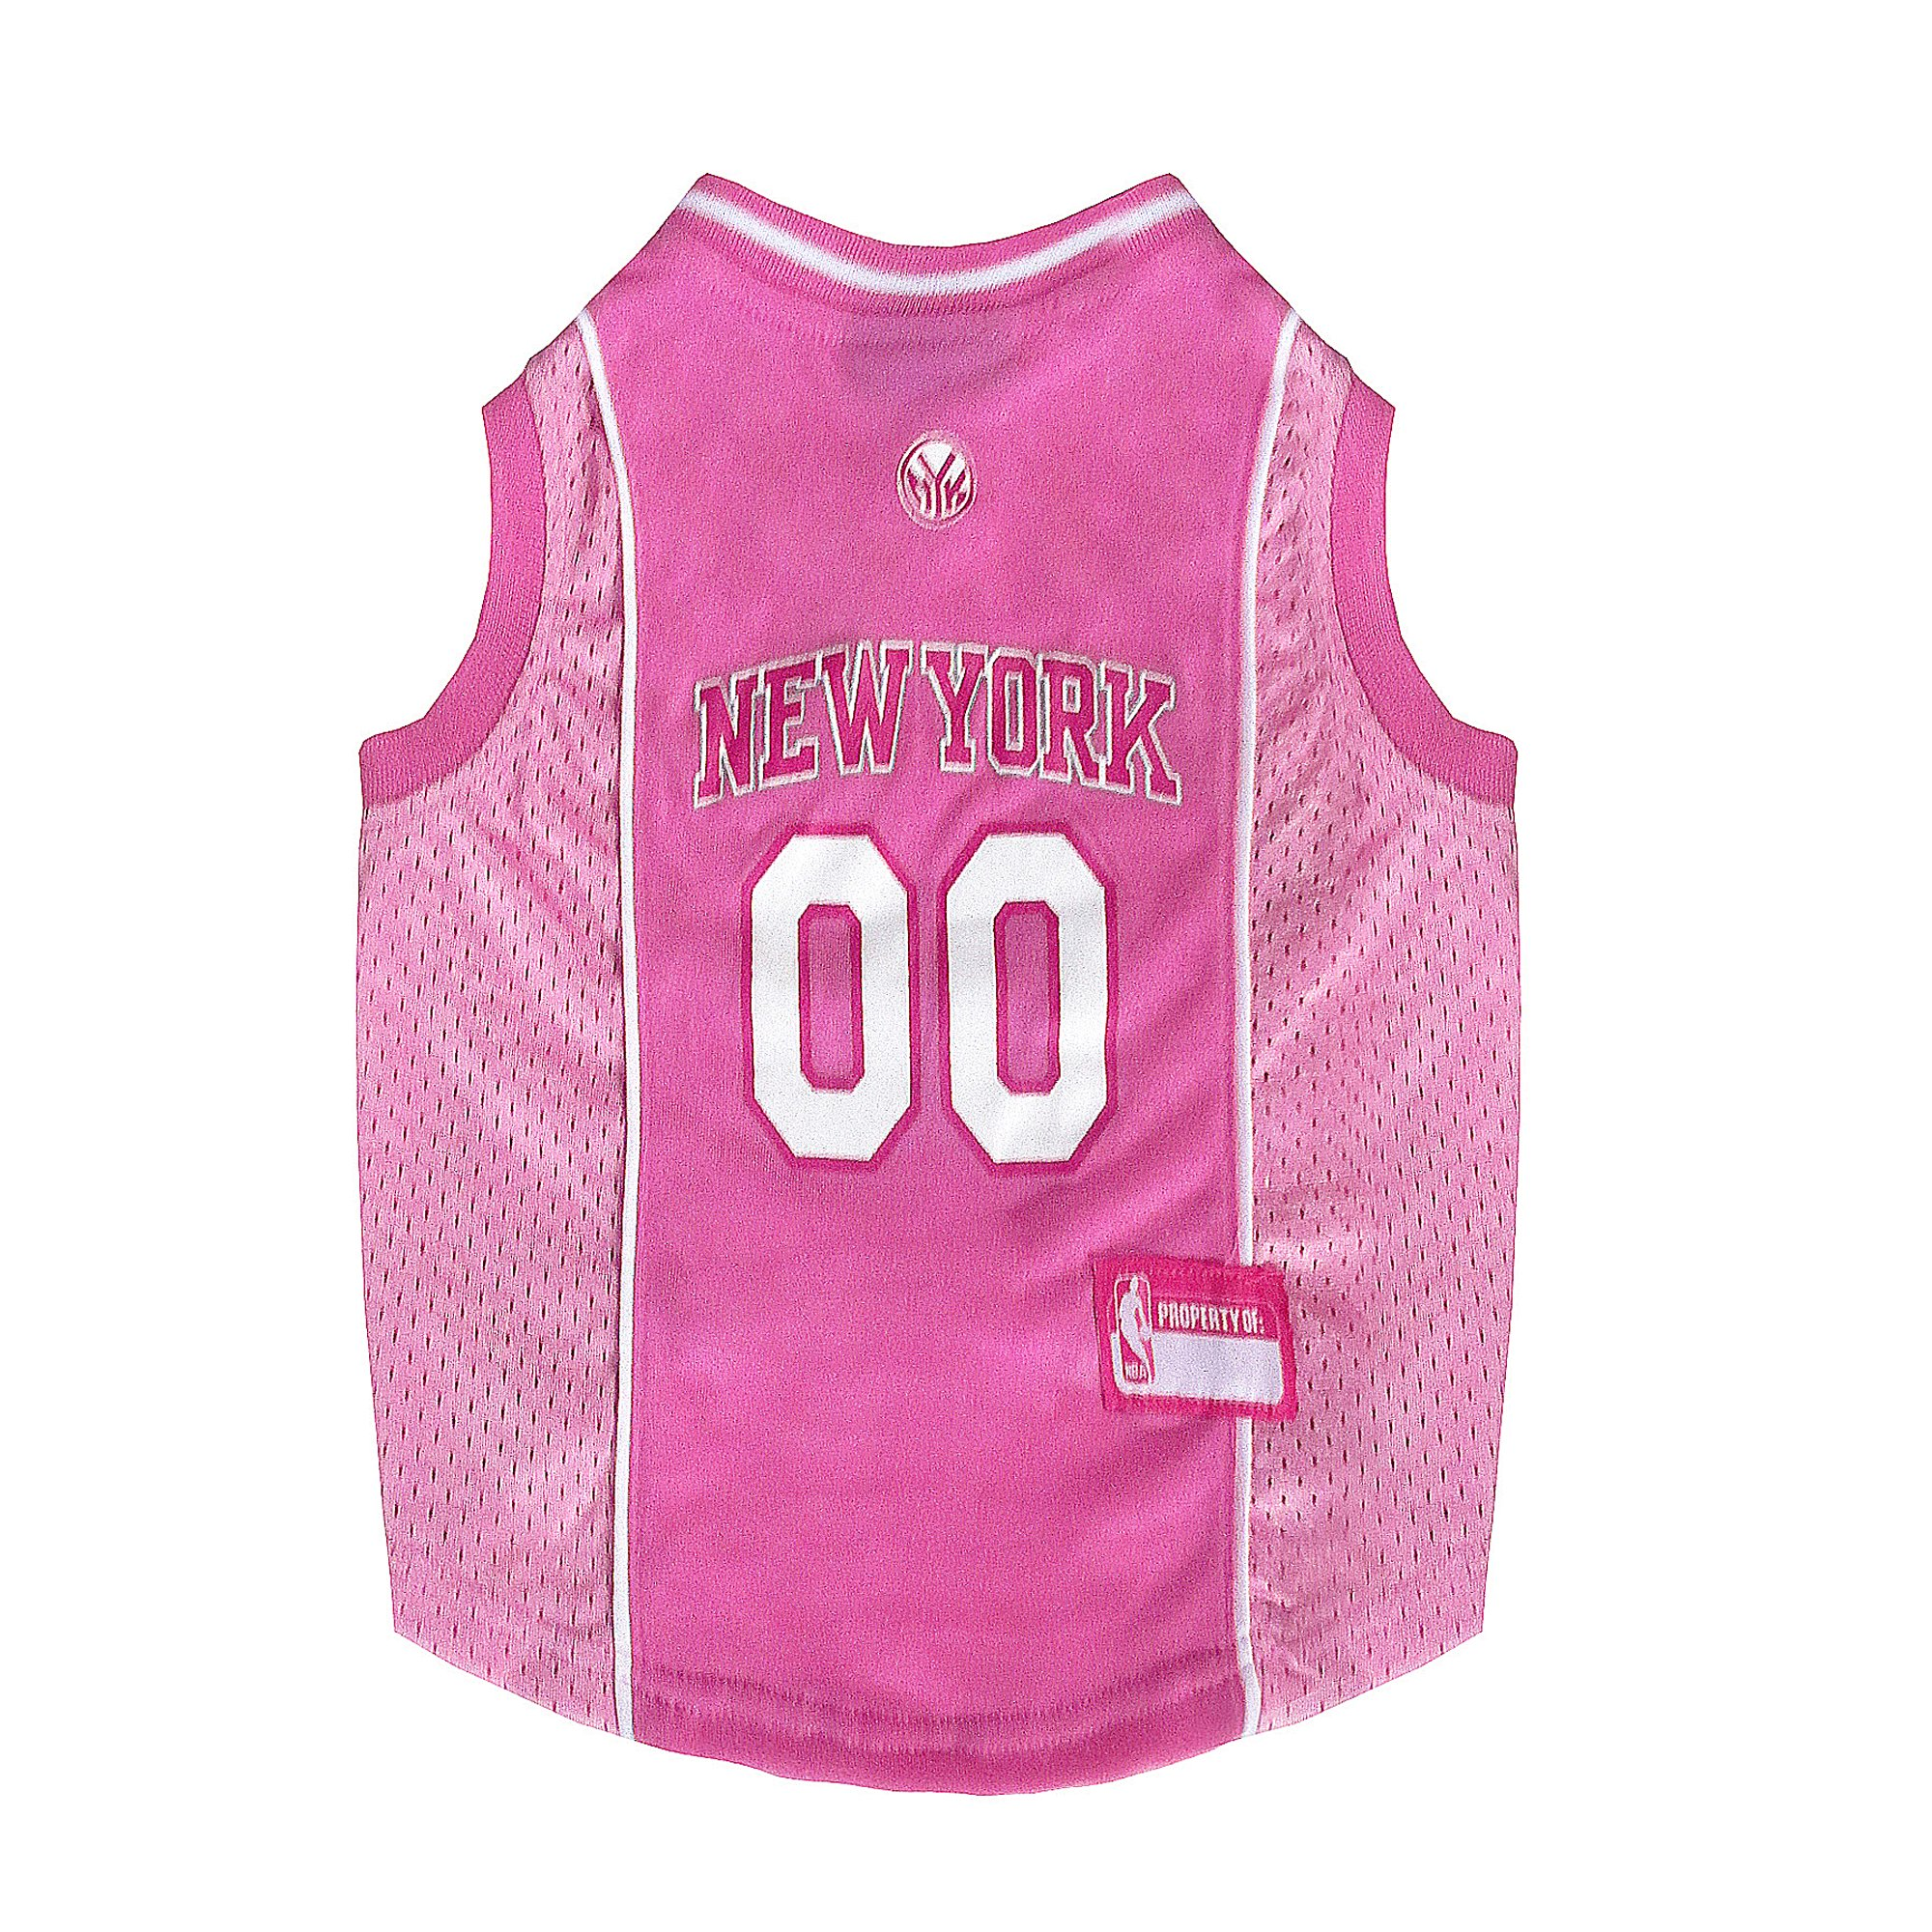 Pets First New York Knicks Nba Pink Jersey For Dogs Small Nba New York New York Knicks Pink Dog